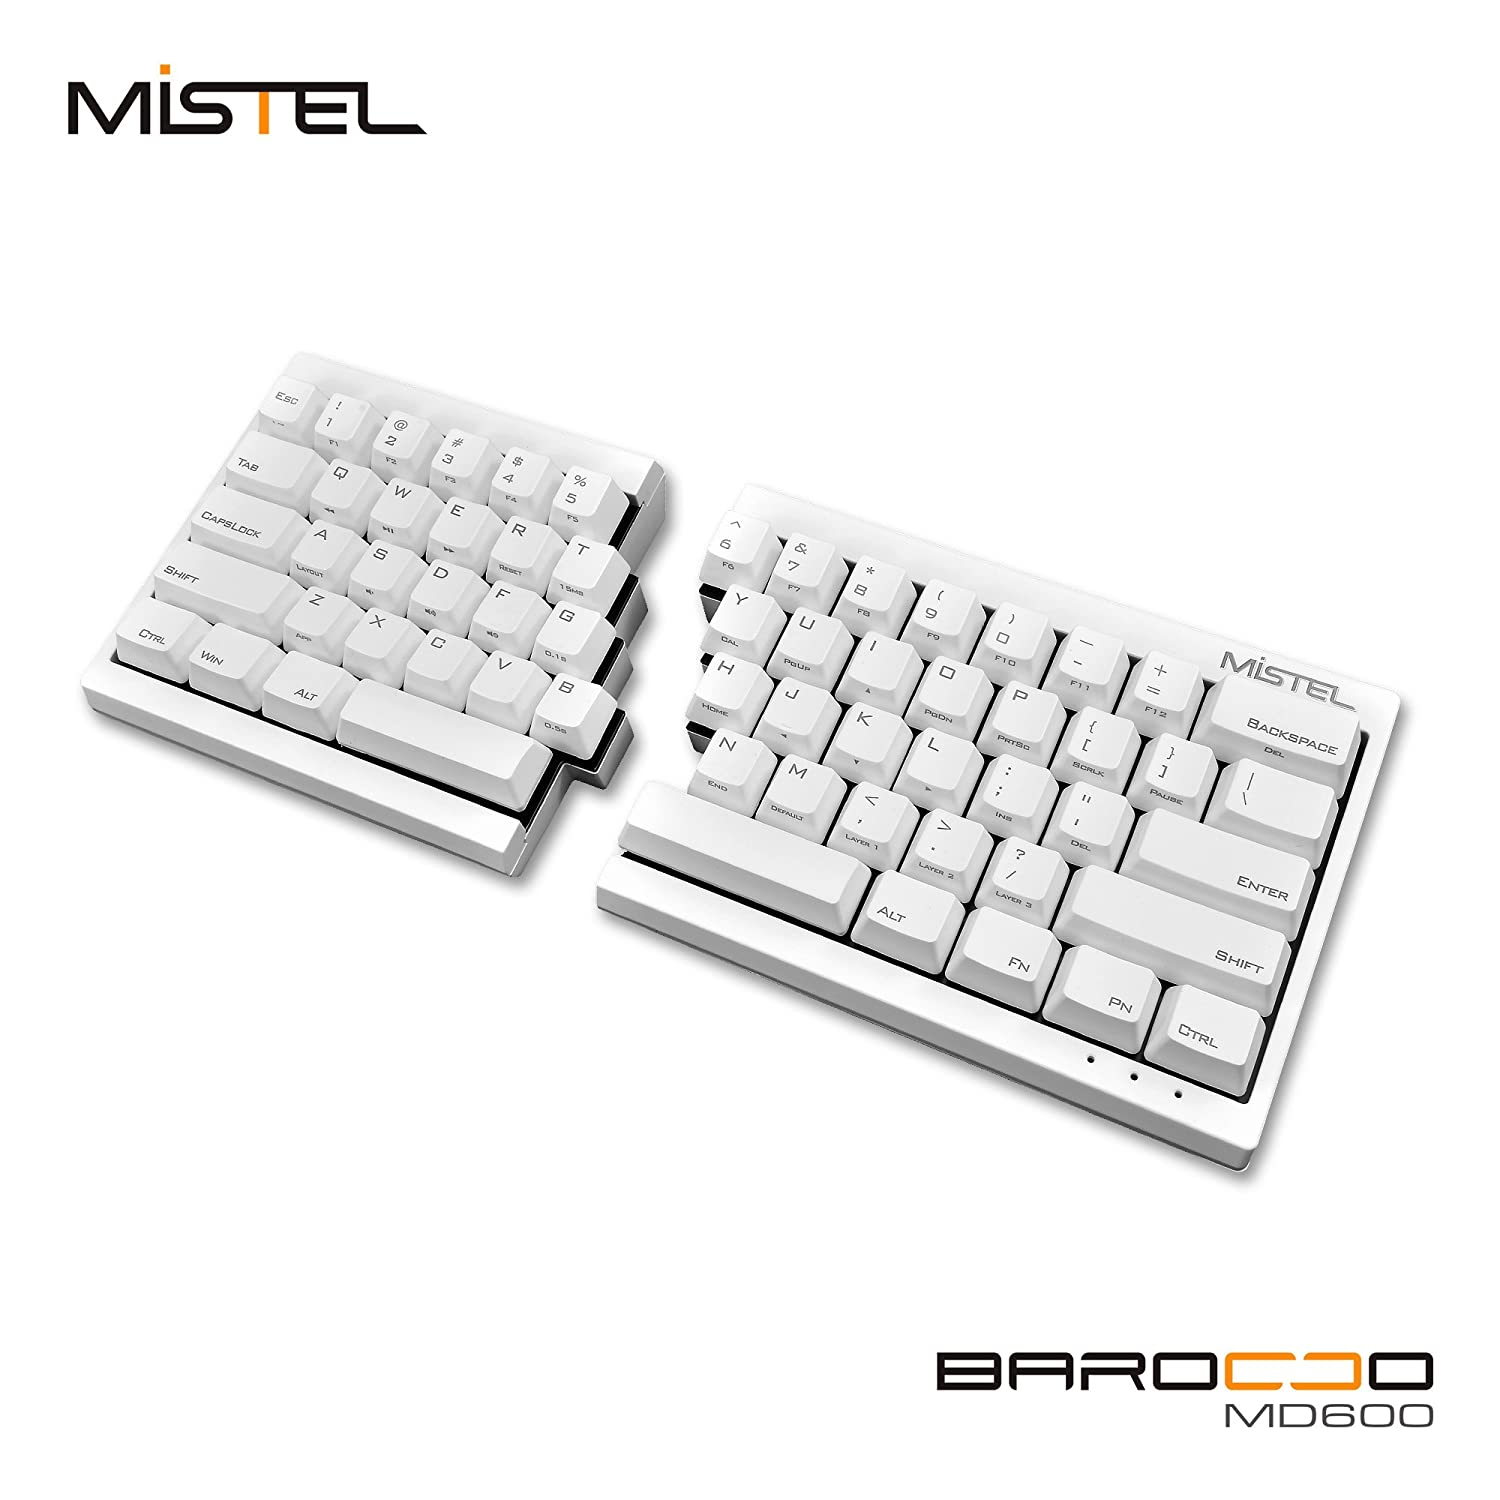 757e47bc8c5 Amazon.com: Mistel Barocco Ergonomic Split PBT Mechanical Keyboard with Cherry  MX Blue Switches, White: Computers & Accessories